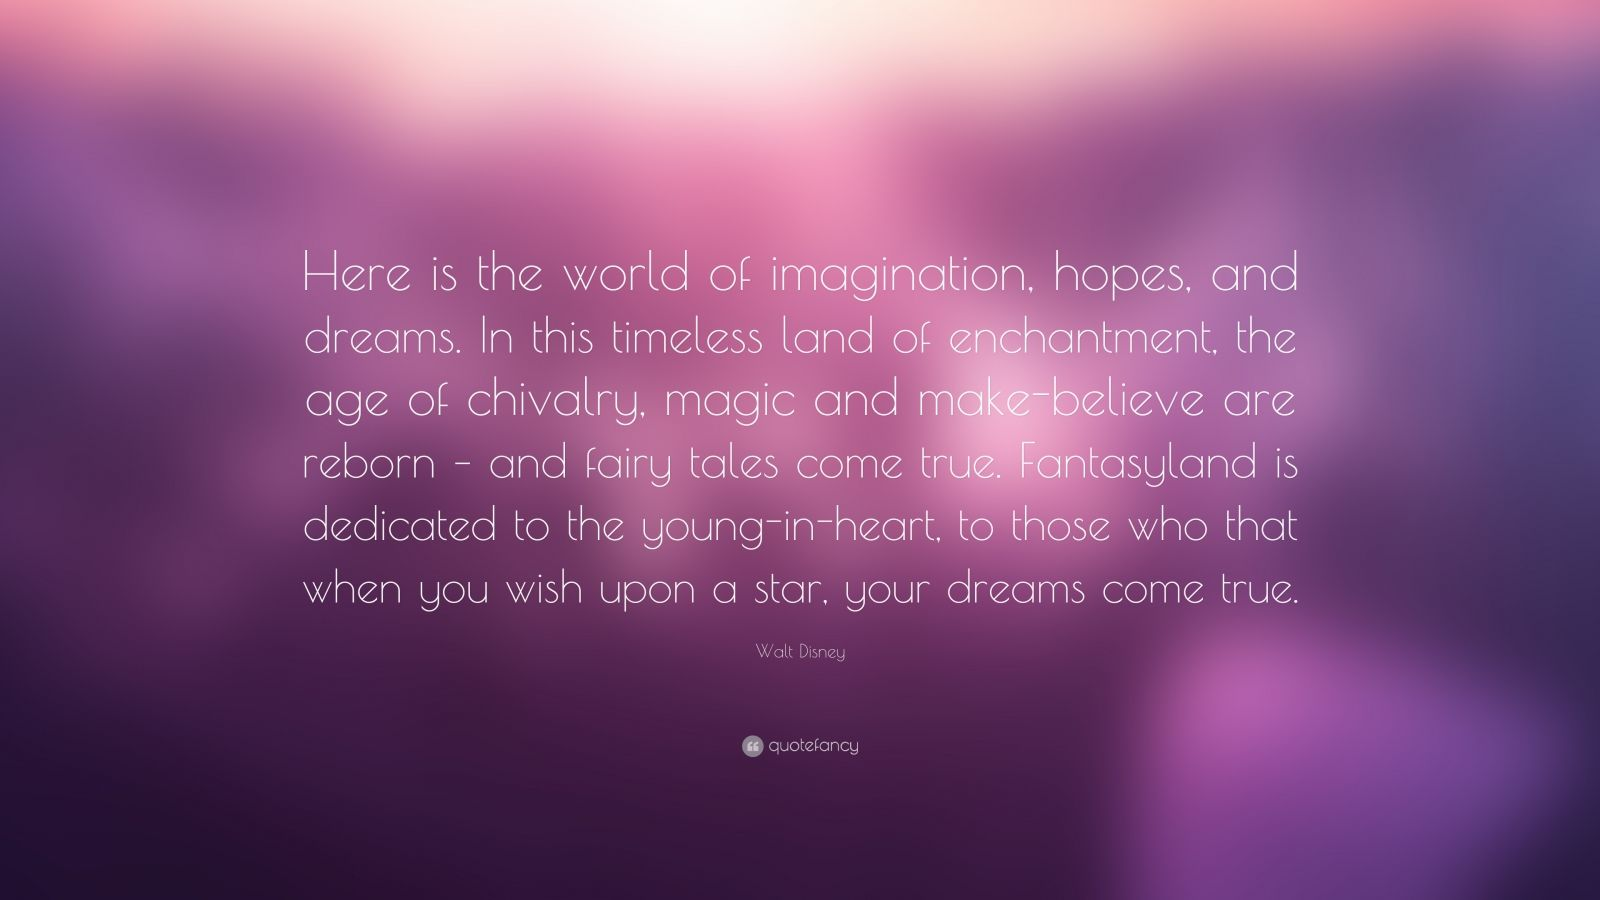 """Walt Disney Quote: """"Here is the world of imagination, hopes, and dreams. In this timeless land of enchantment, the age of chivalry, magic and make-believe are reborn – and fairy tales come true. Fantasyland is dedicated to the young-in-heart, to those who that when you wish upon a star, your dreams come true."""""""